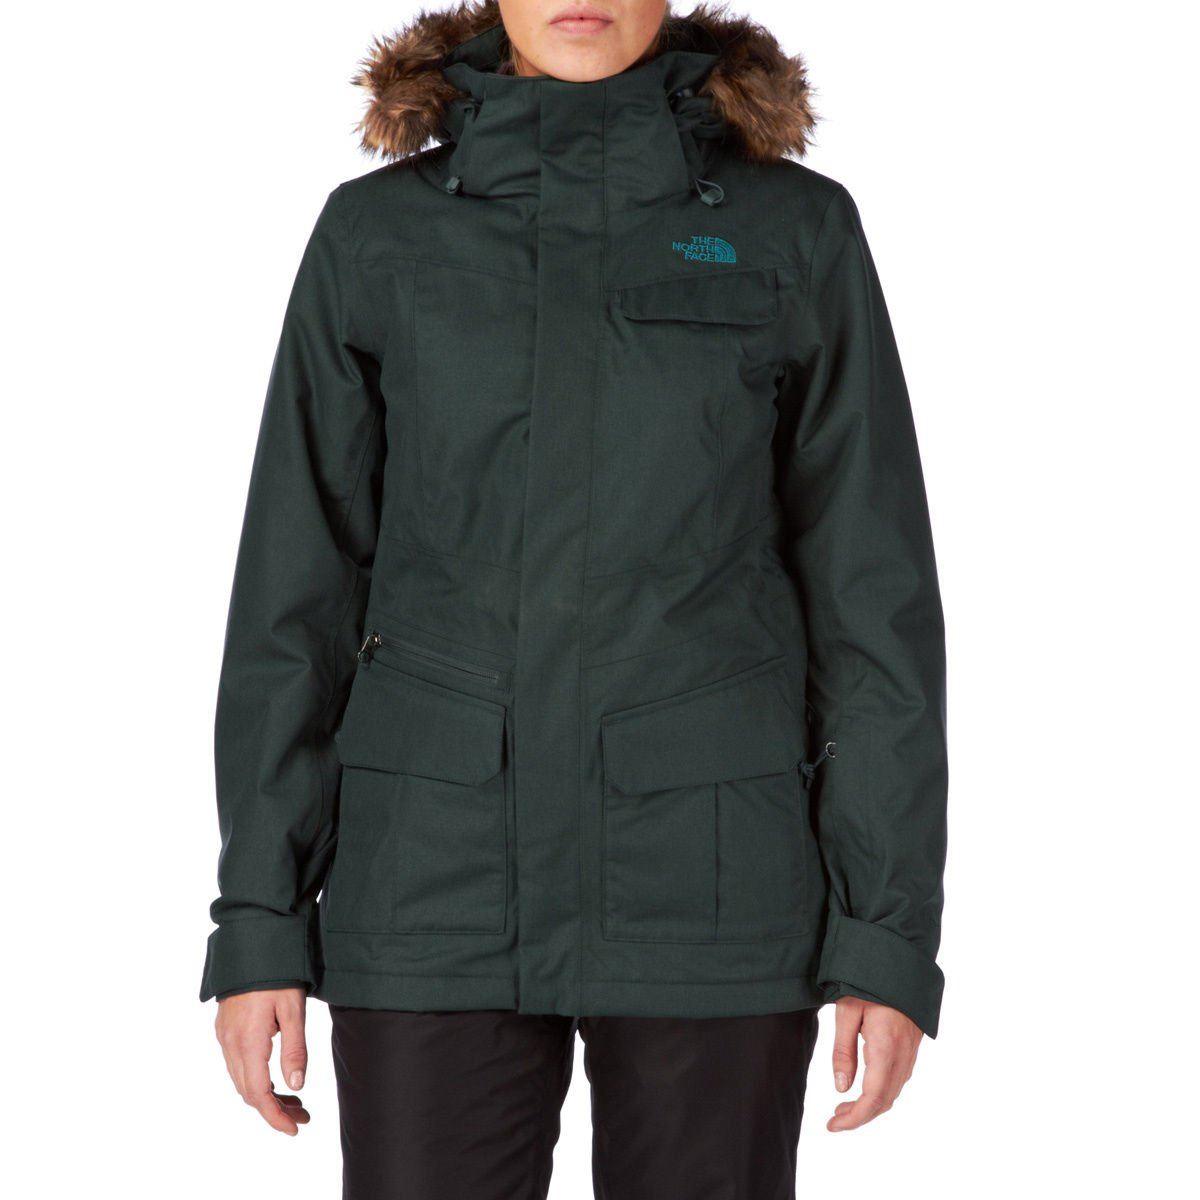 Damen Snowboard Jacke The North Face Baker Delux Jacket günstig bestellen